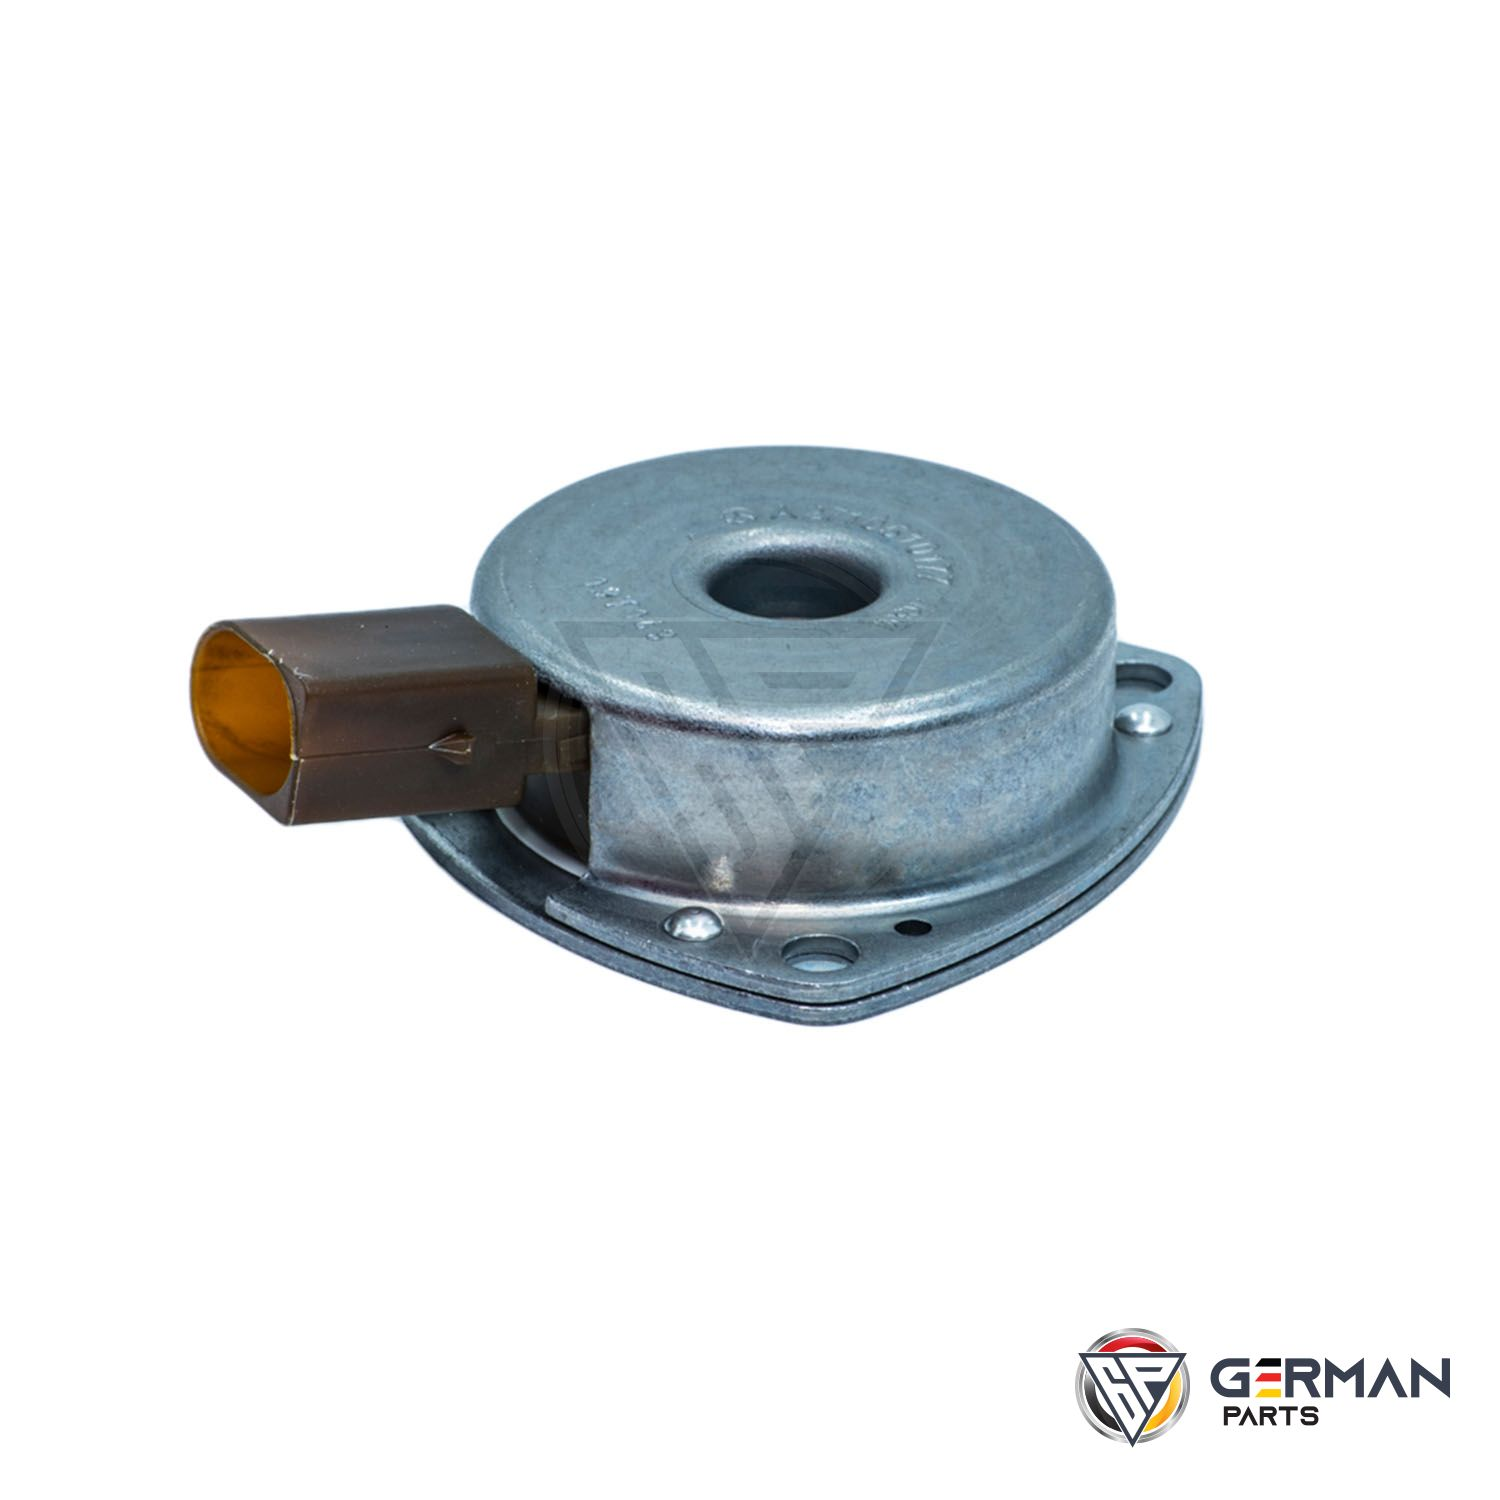 Buy Genuine Mercedes Benz Camshaft Magnet 2710510177 - German Parts